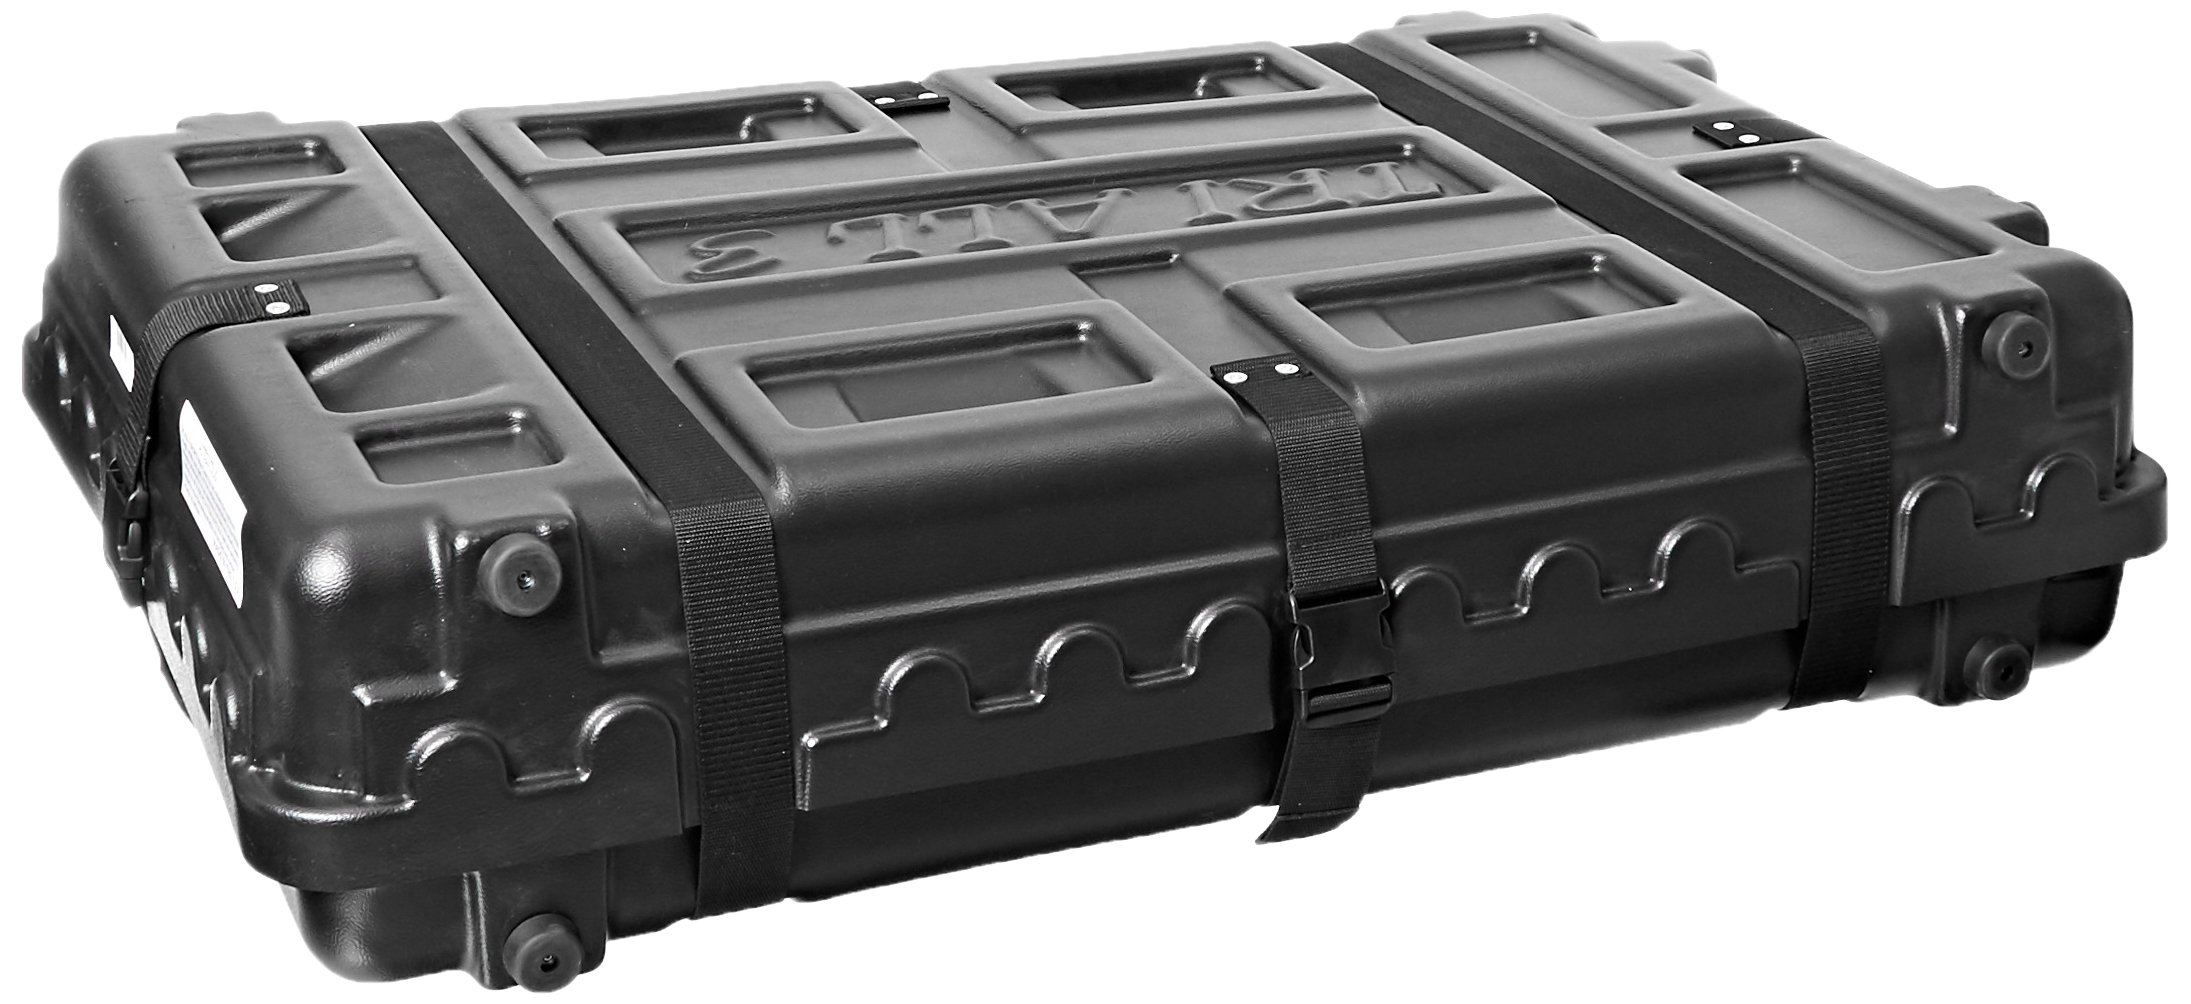 Tri All 3 Sports Clam Shell Bike Case by Tri All 3 Sports (Image #1)